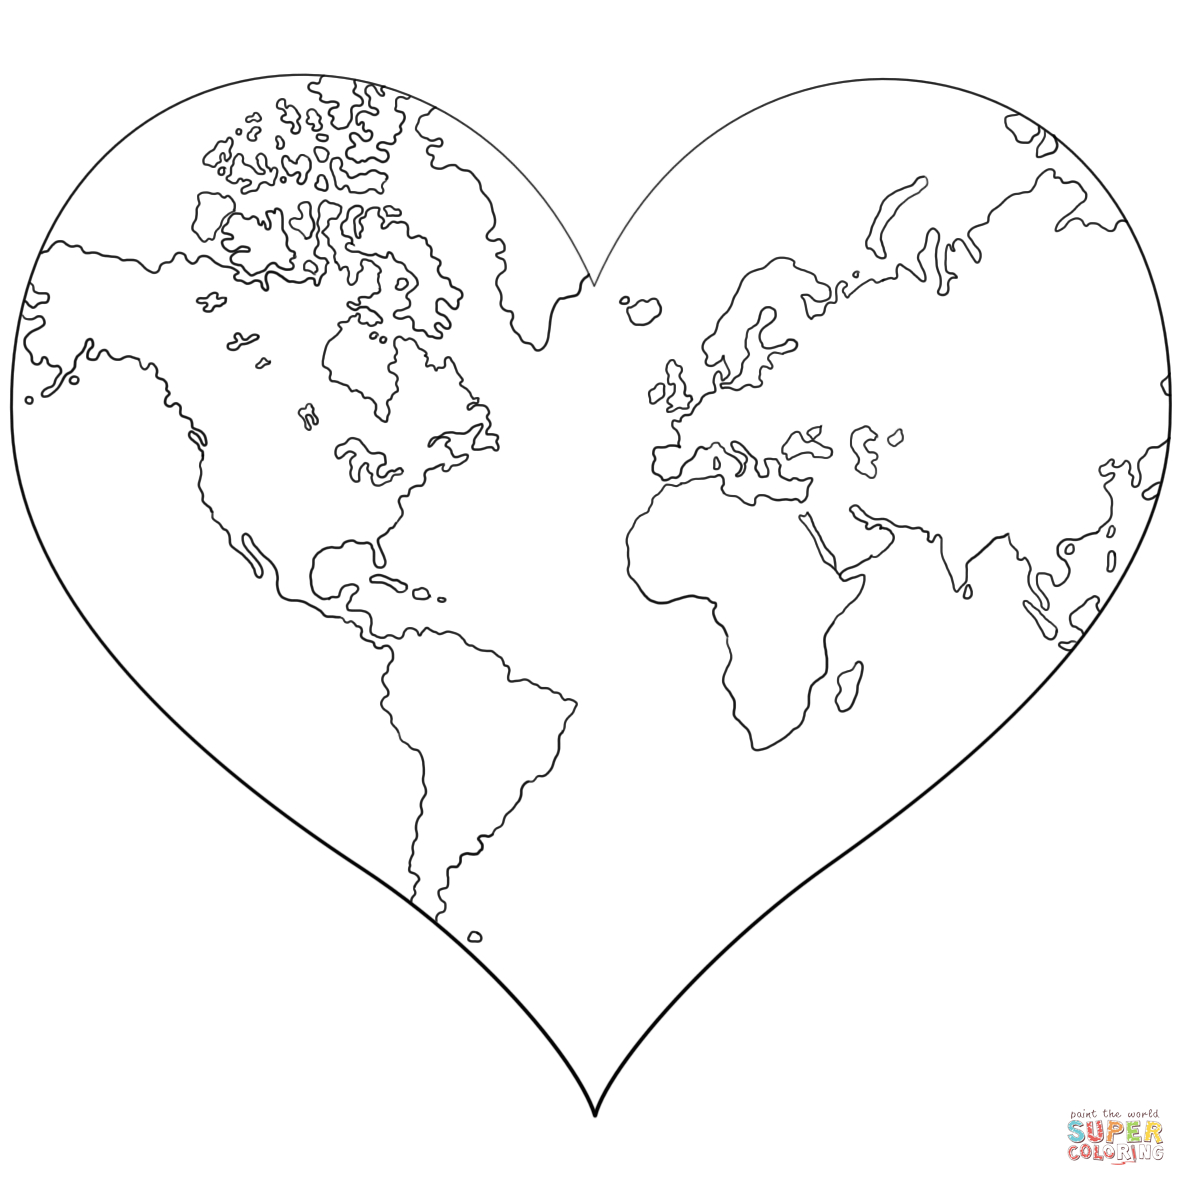 Heart Shaped Earth Coloring Page   Free Printable Coloring Pages - Earth Coloring Pages Free Printable